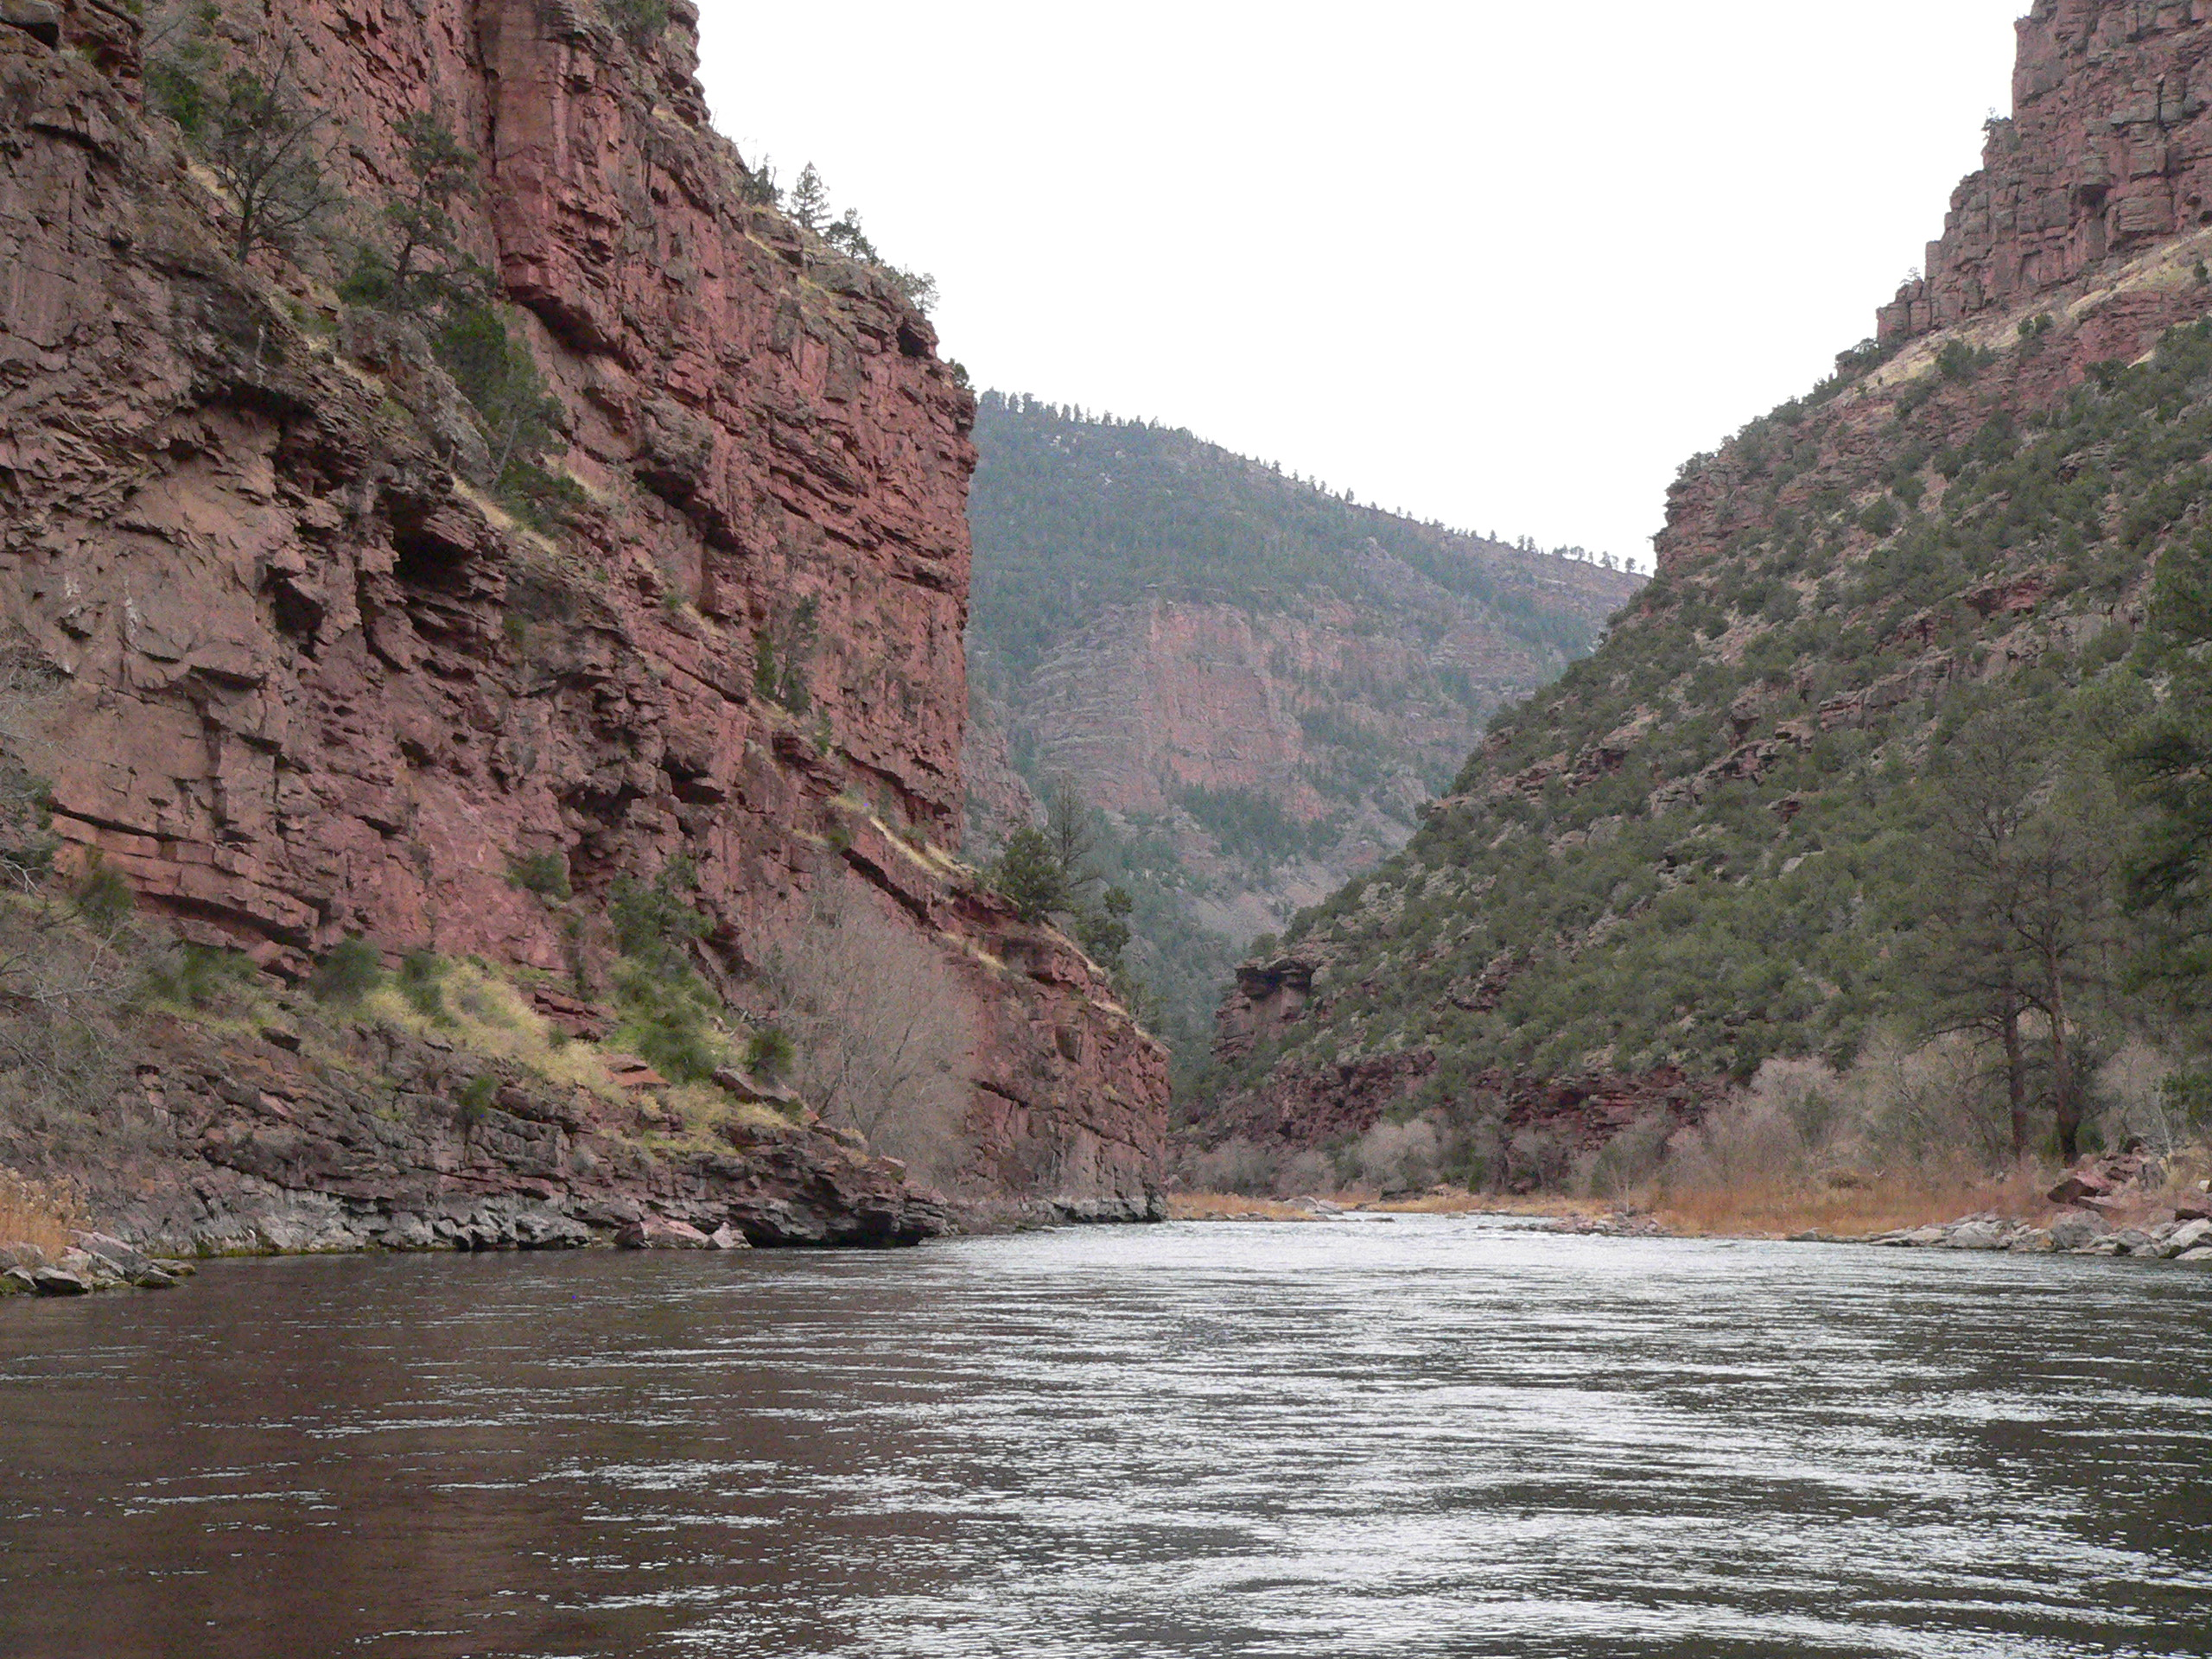 View of Green River in canyon below Flaming Gorge Dam